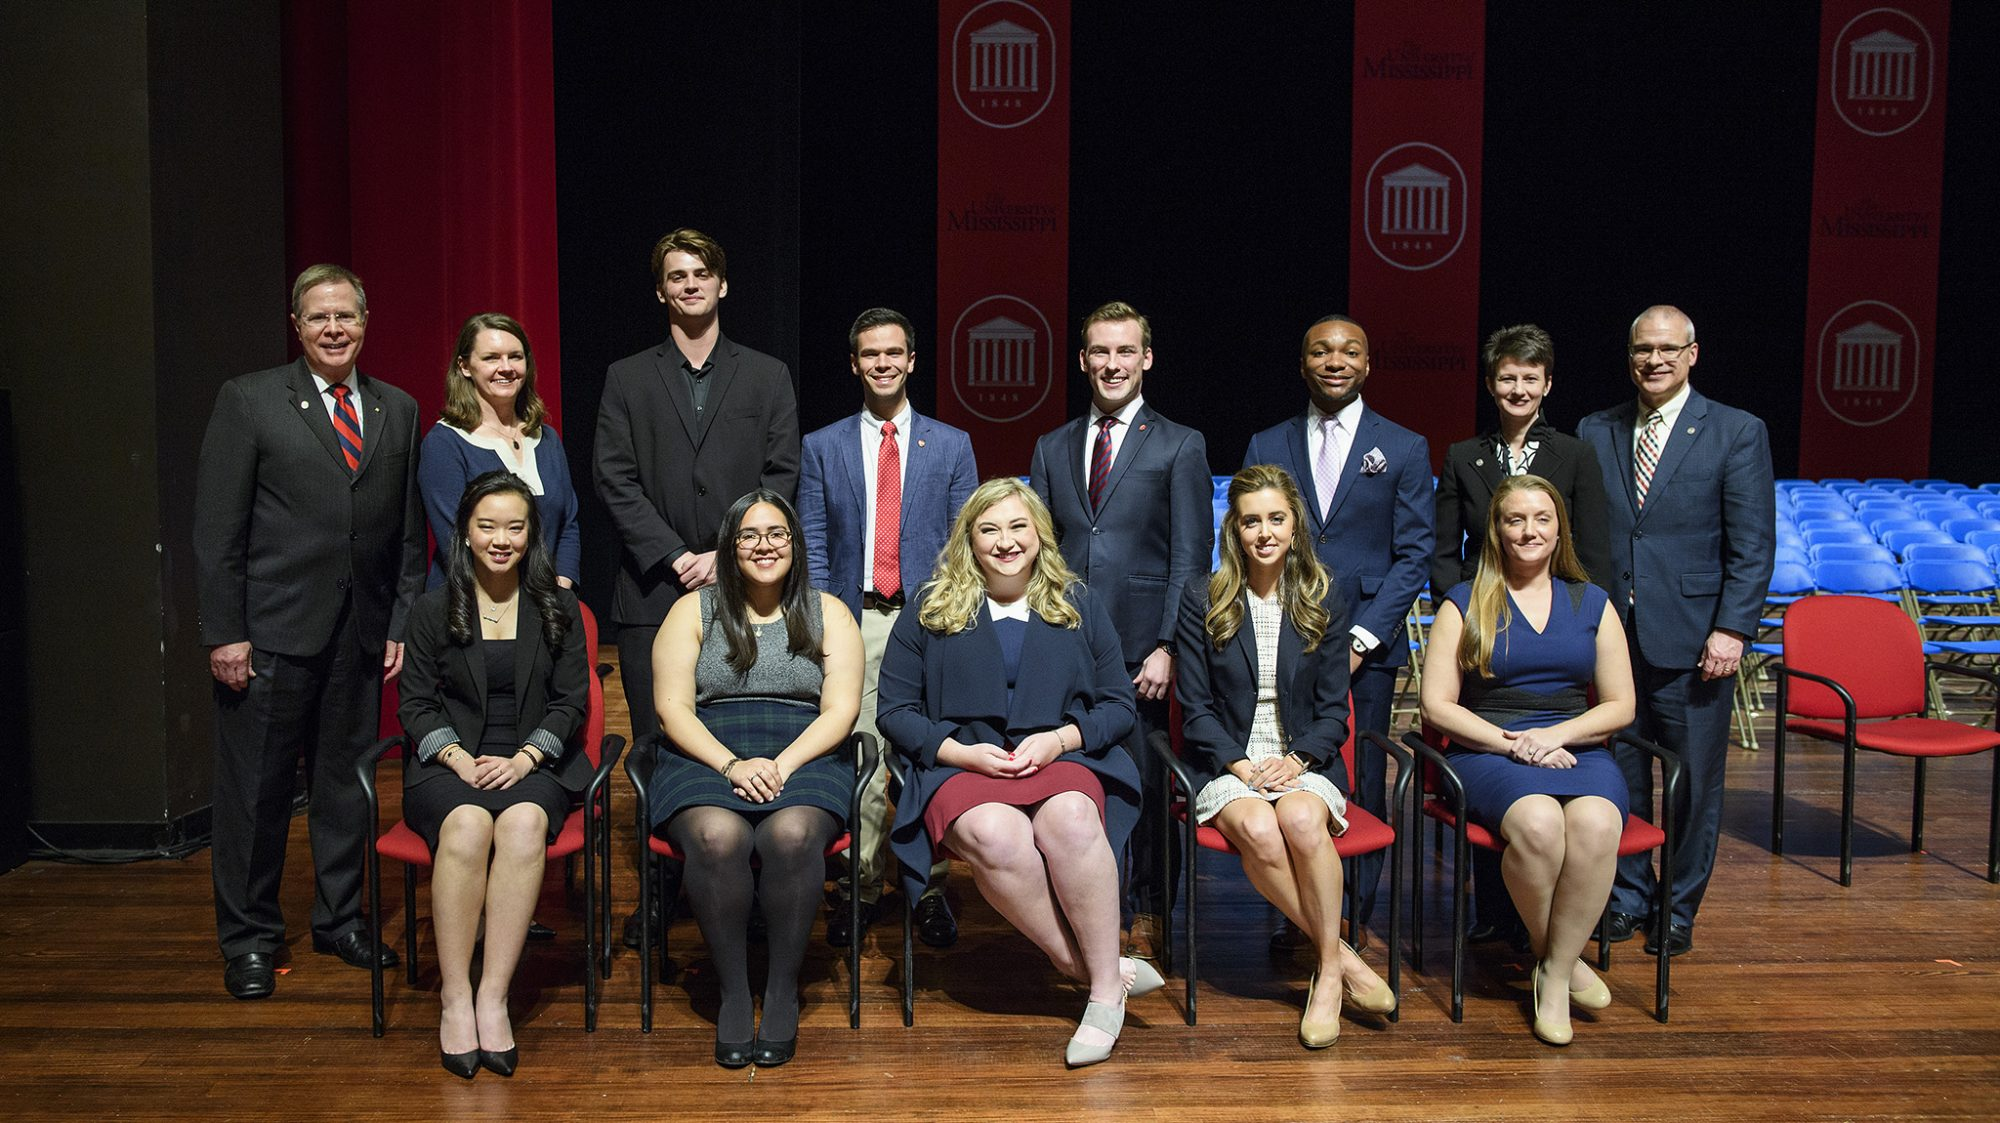 Congratulations to 3 PPL students who were named into Ole Miss Hall of Fame: Allen Coon, Austin Spindler, and Savannah Smith!